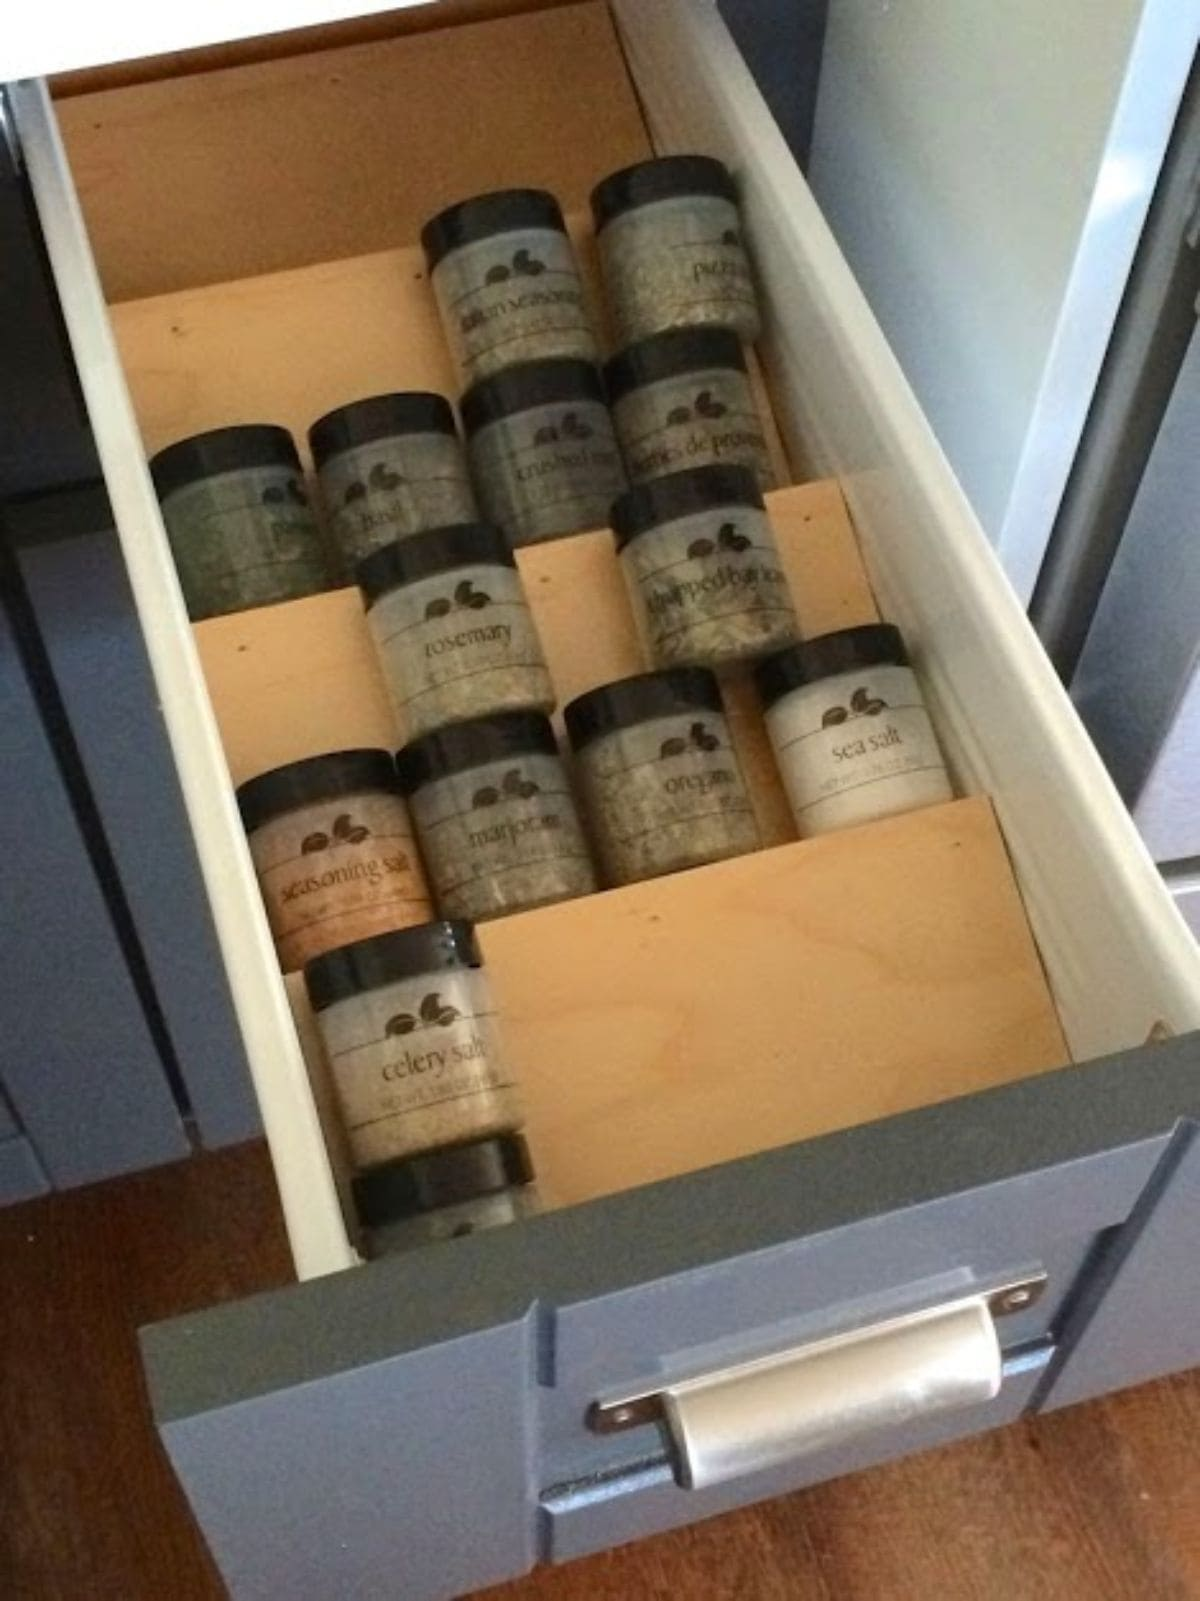 Inside a kitchen drawer are some slanted pieces of wood. On each shelf are small galss spice pots